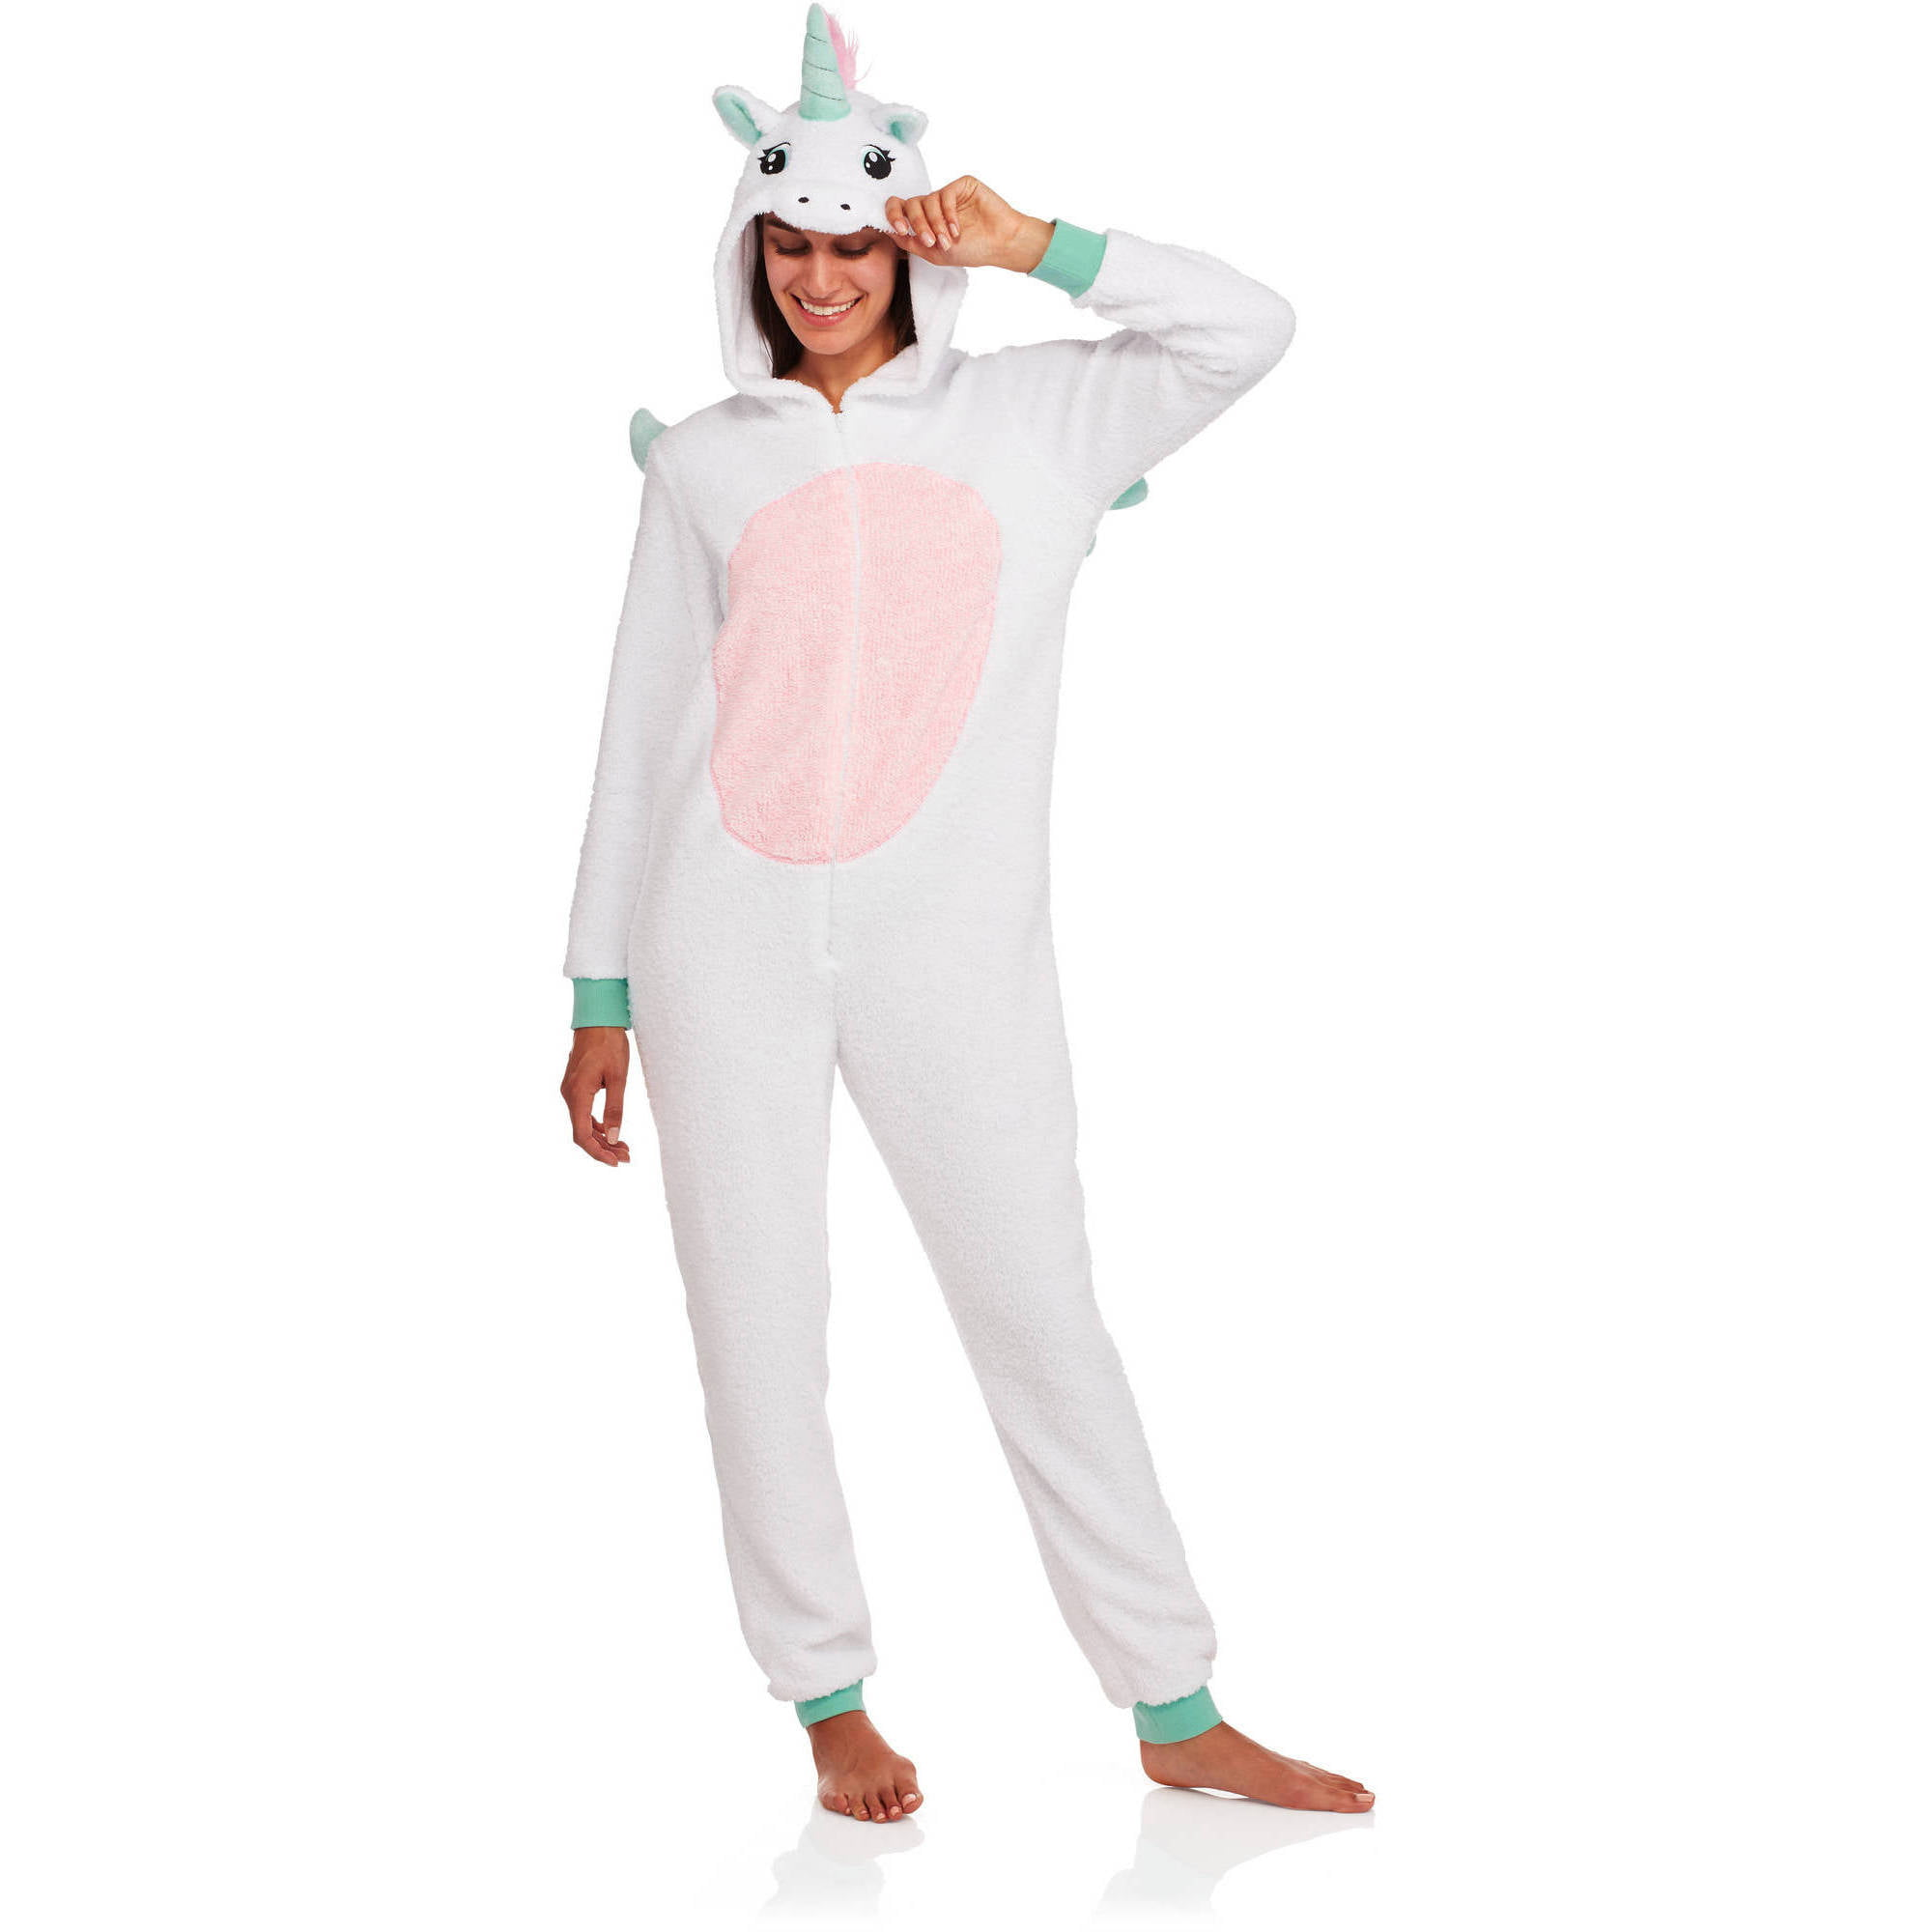 be928d9311 Women s Assorted Character Sleepwear Adult One Piece Costume Union Suit  Pajama (Sizes XS-3X) - Walmart.com